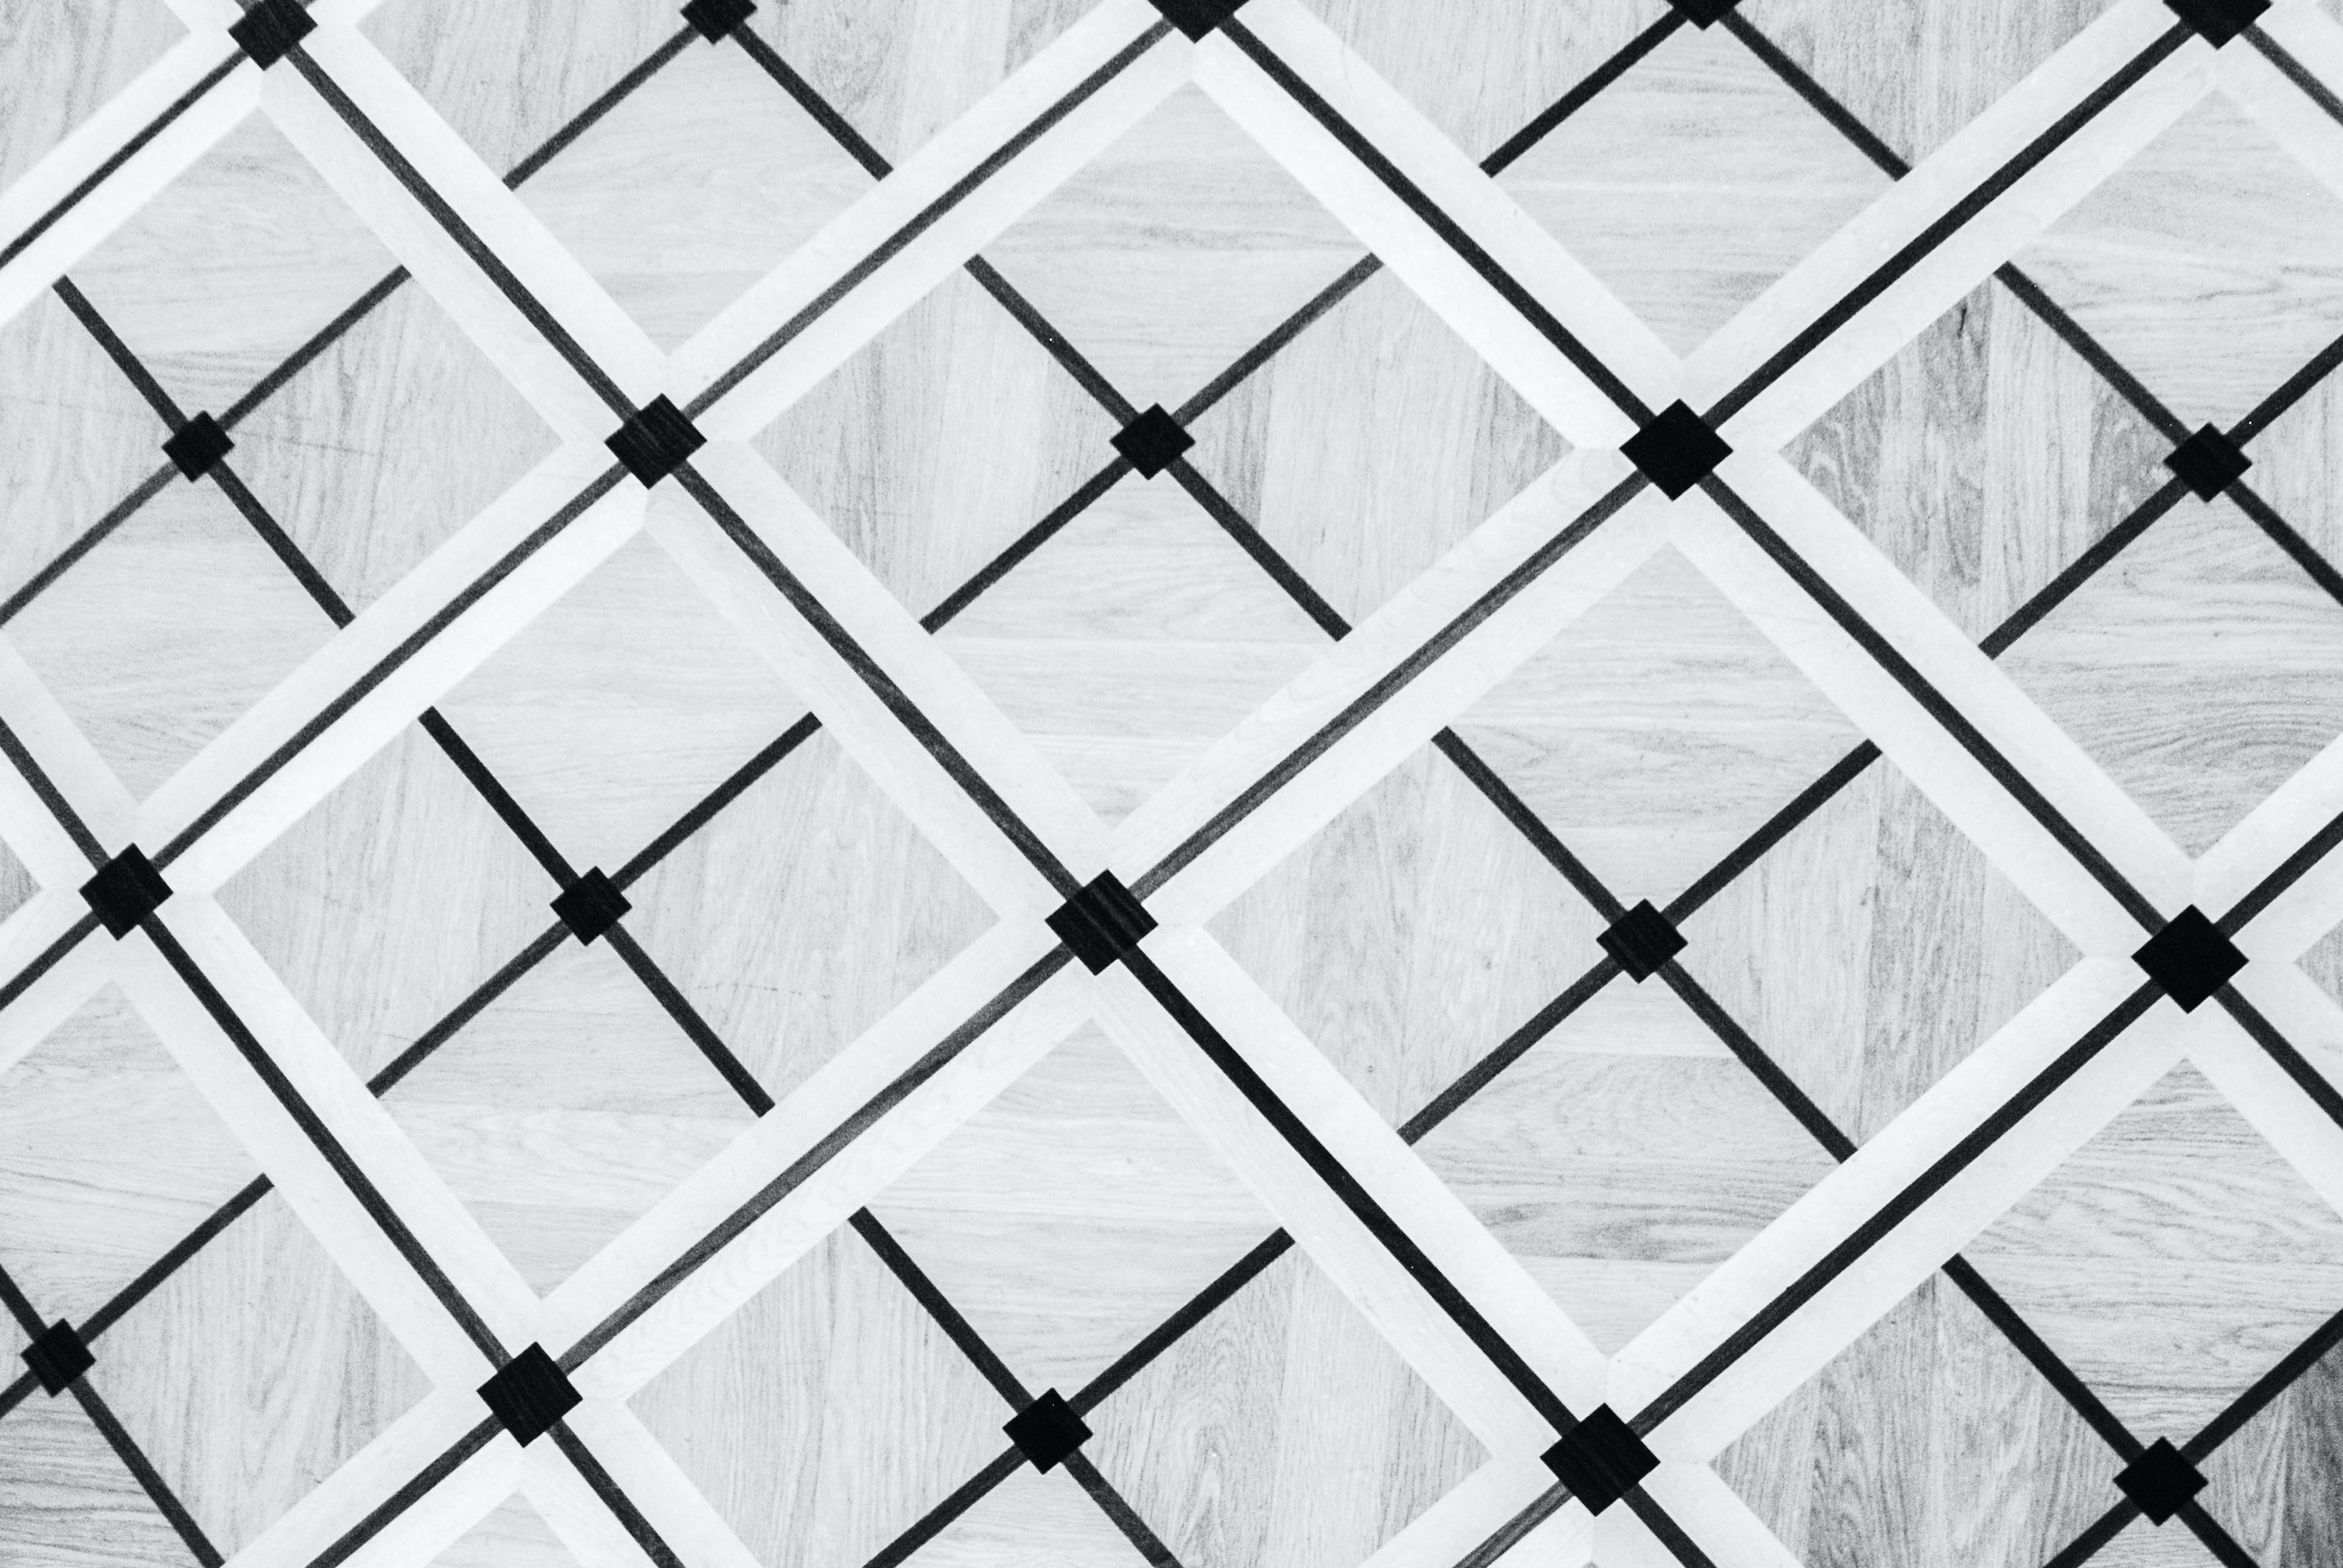 Free stock photo of pattern, texture, pattern shapes